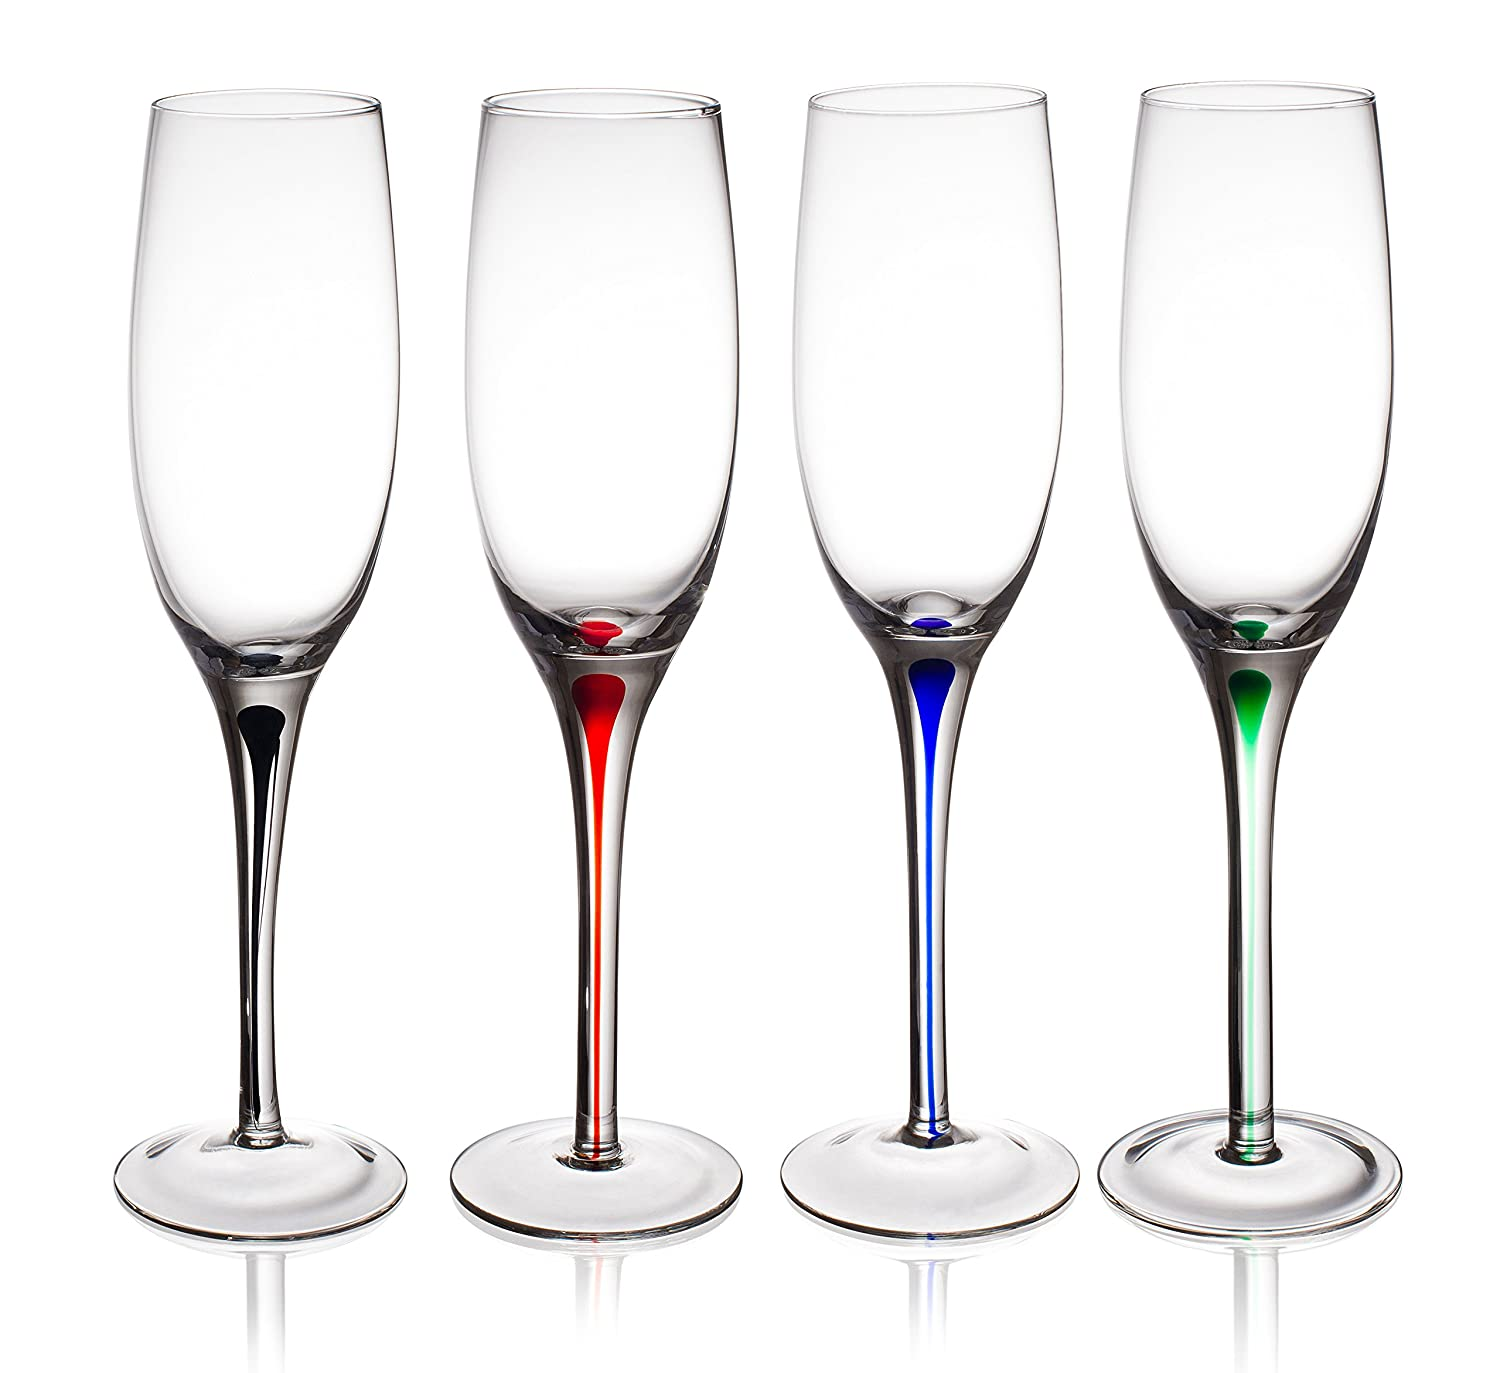 10-inches Tall – Elegant Glassware And Stemware Klikel Inc Green Trinkware Set of 4 Champagne Flutes With Raindrop Stem in Red 9oz Long Stem Glasses Blue And Black